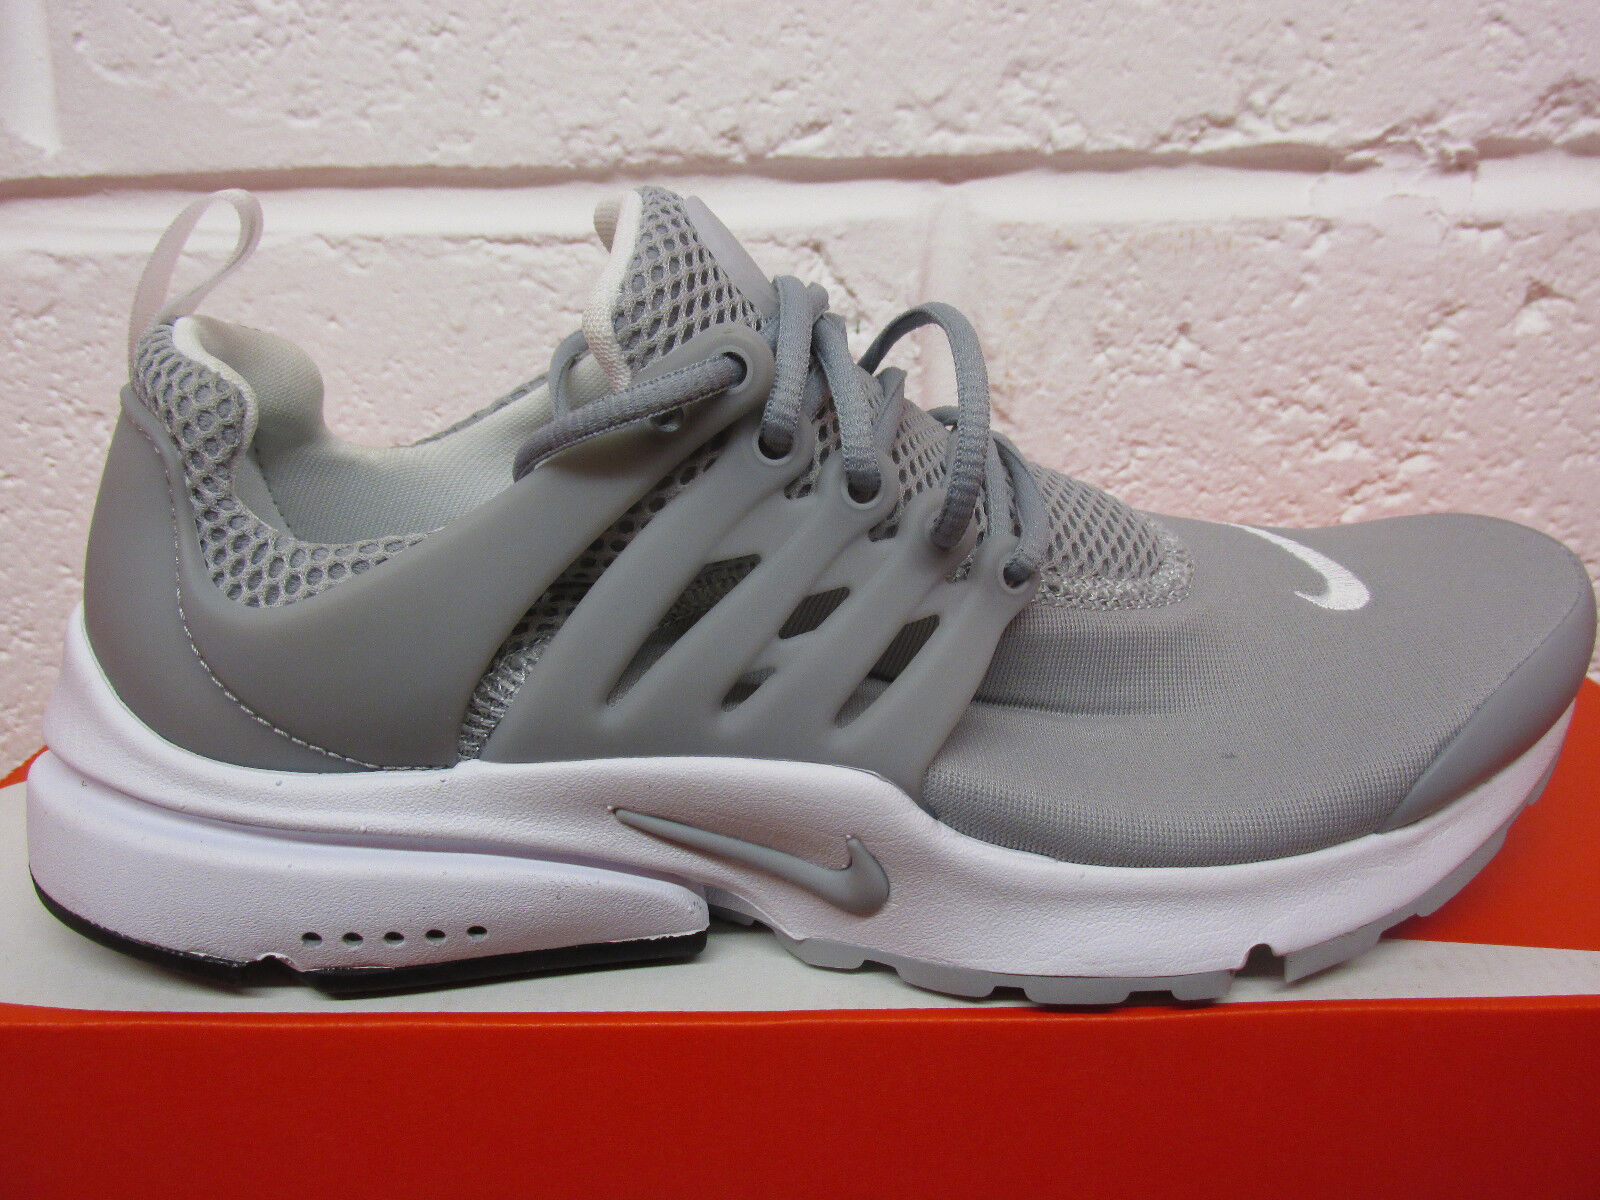 Nike Air Presto Essential mens trainers 848187 013 sneakers shoes CLEARANCE